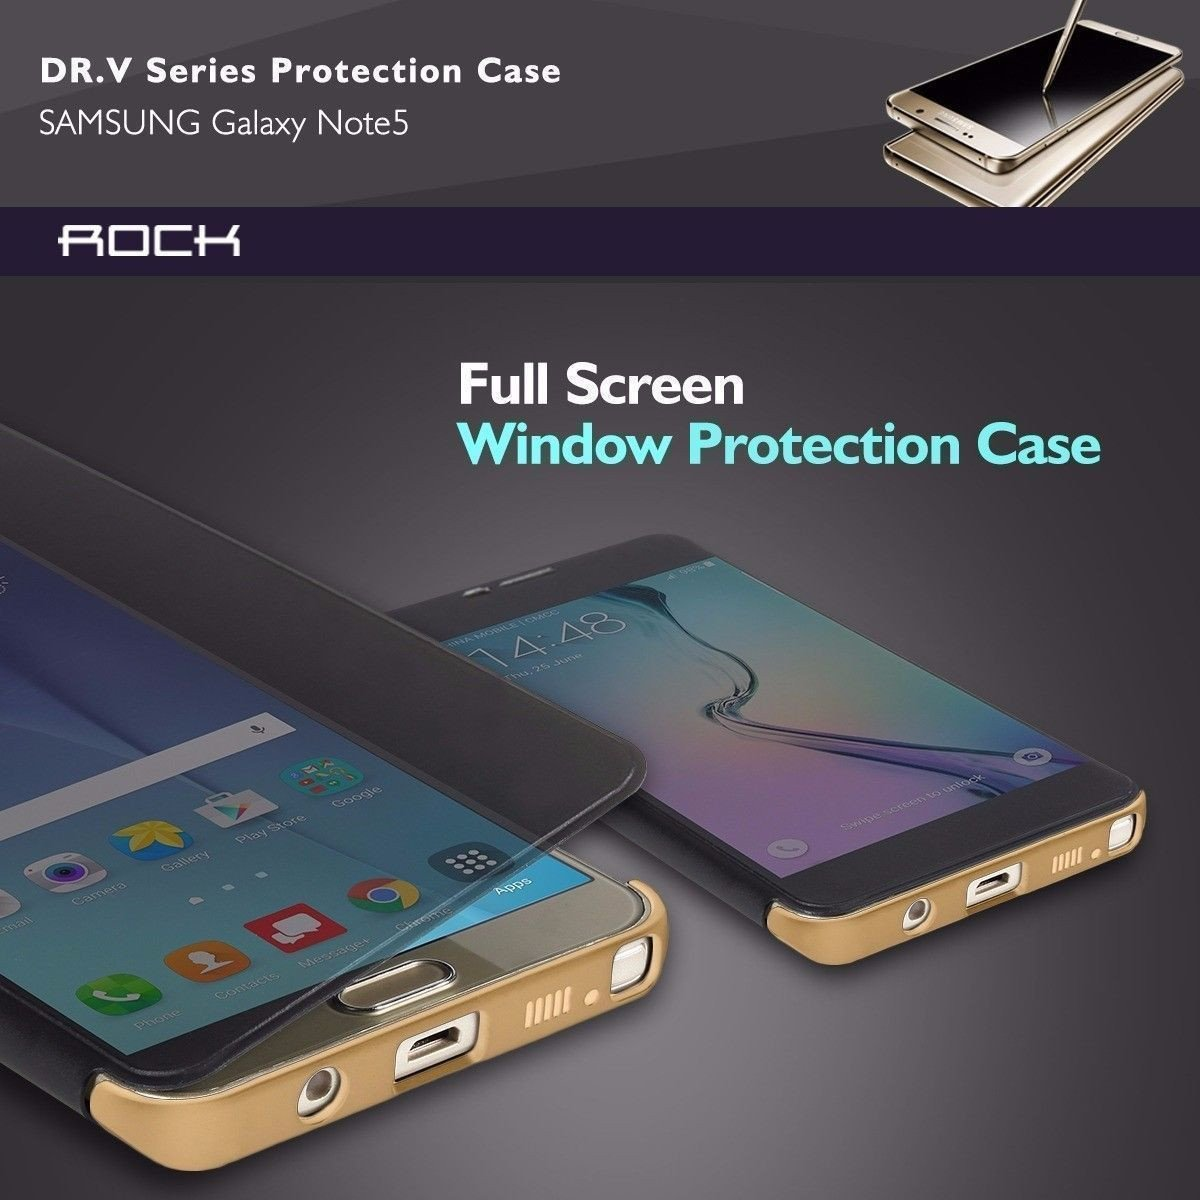 Rock ® Samsung Galaxy Note 5 DR Vaku Invisible SmartView Translucent Touch  Case Flip Cover